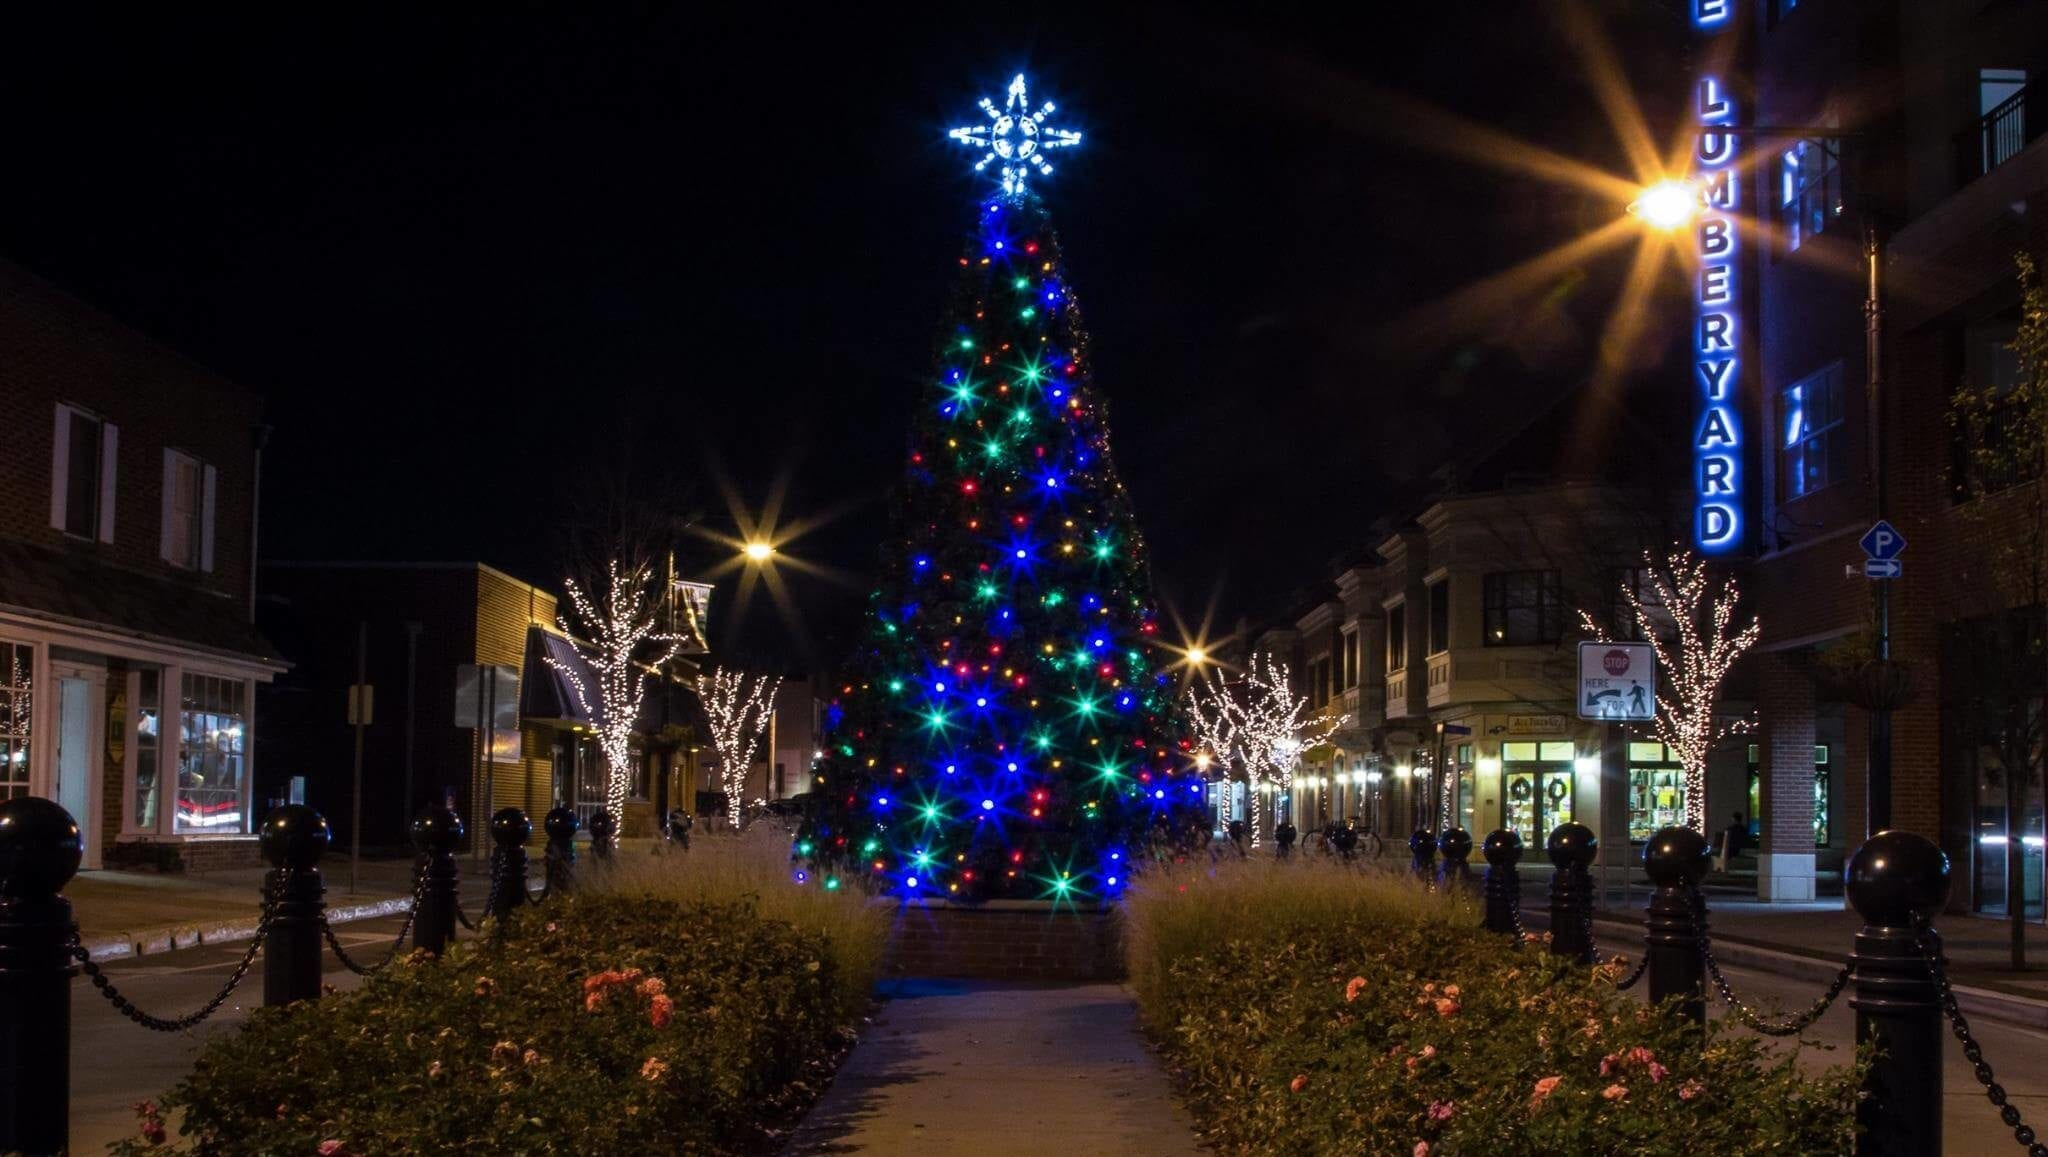 large lit tree in center of town square